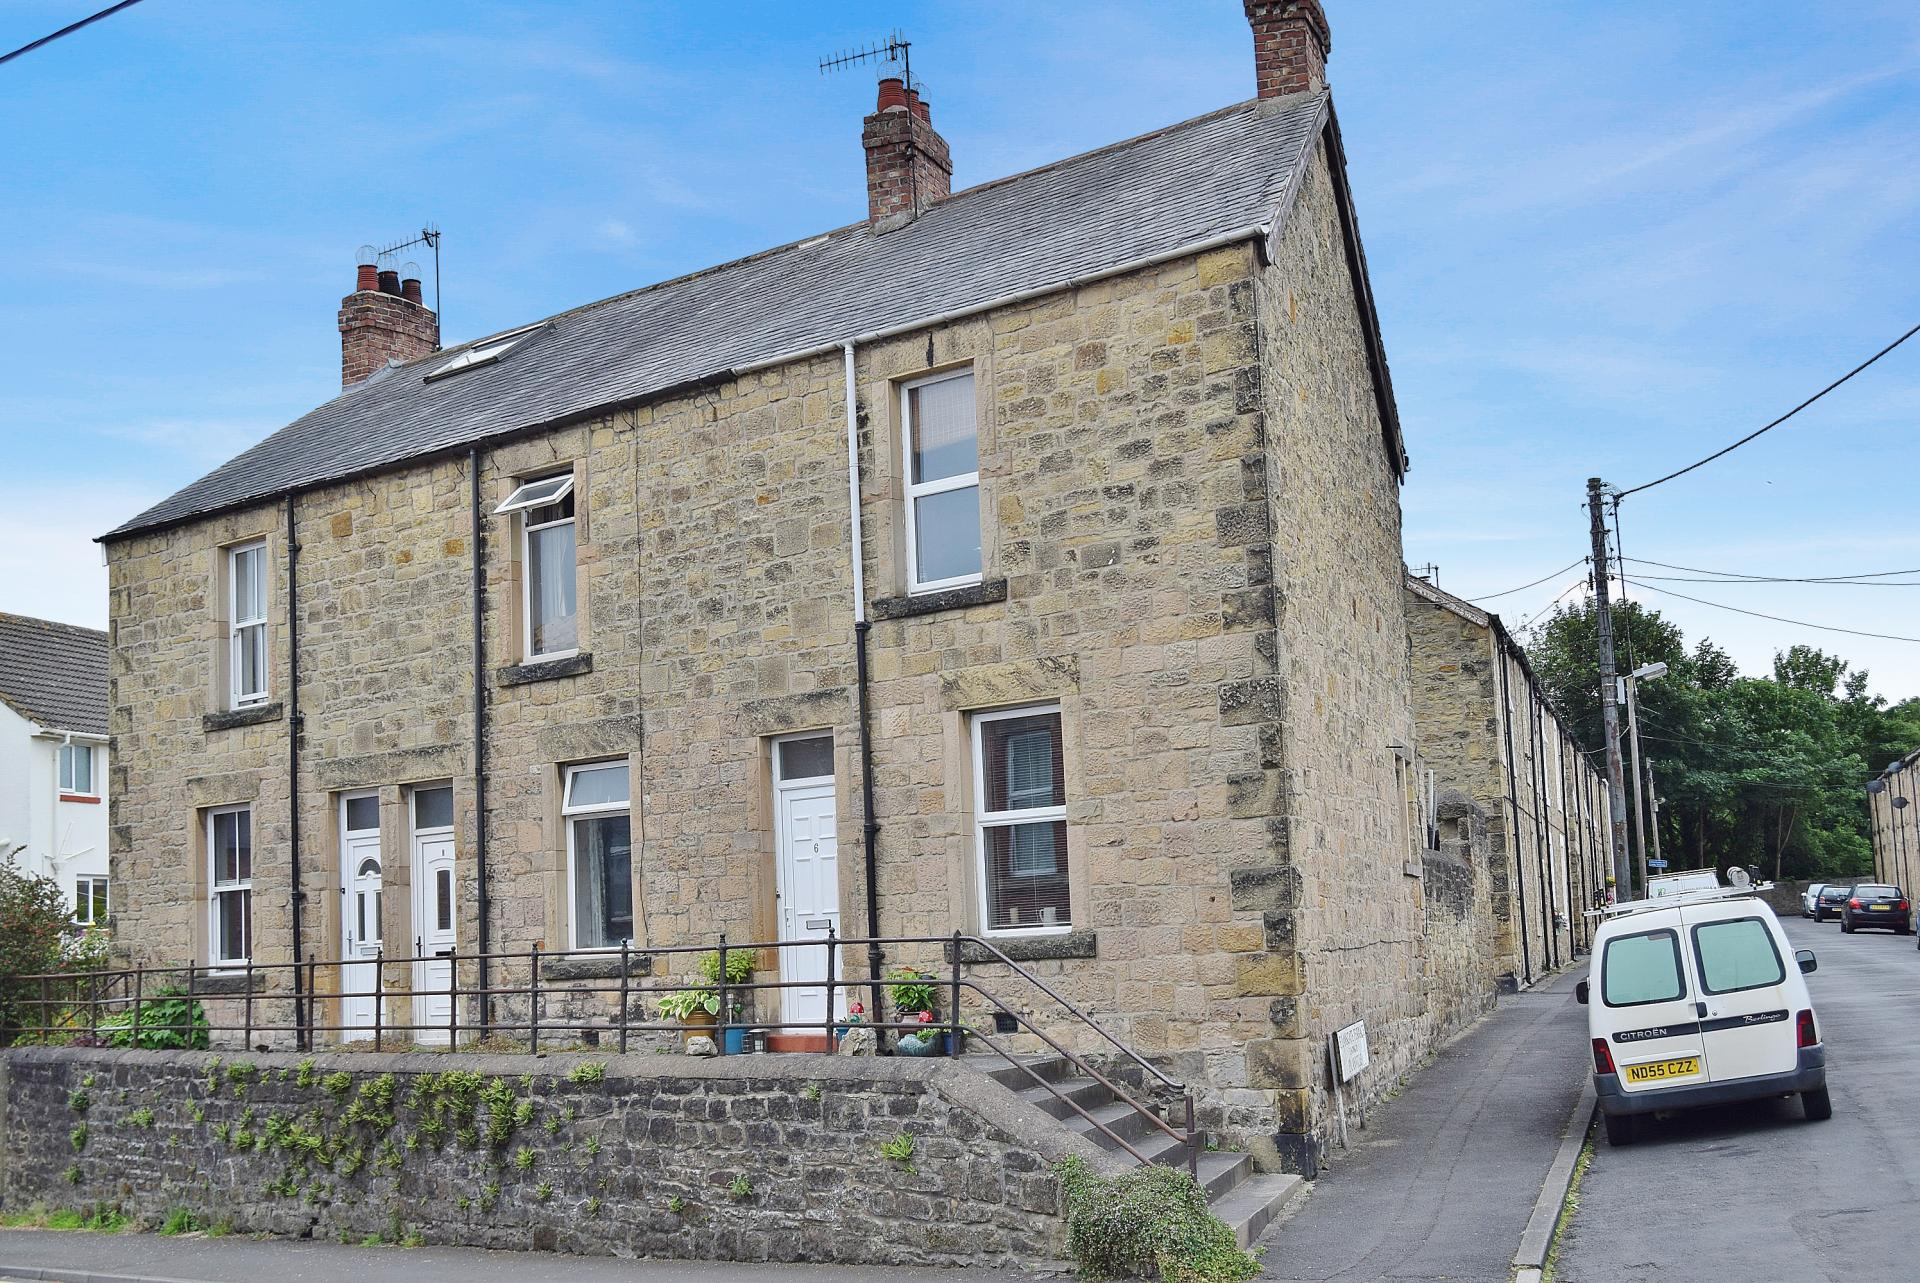 2 Bedrooms Terraced House for sale in Eilansgate Terrace, Hexham